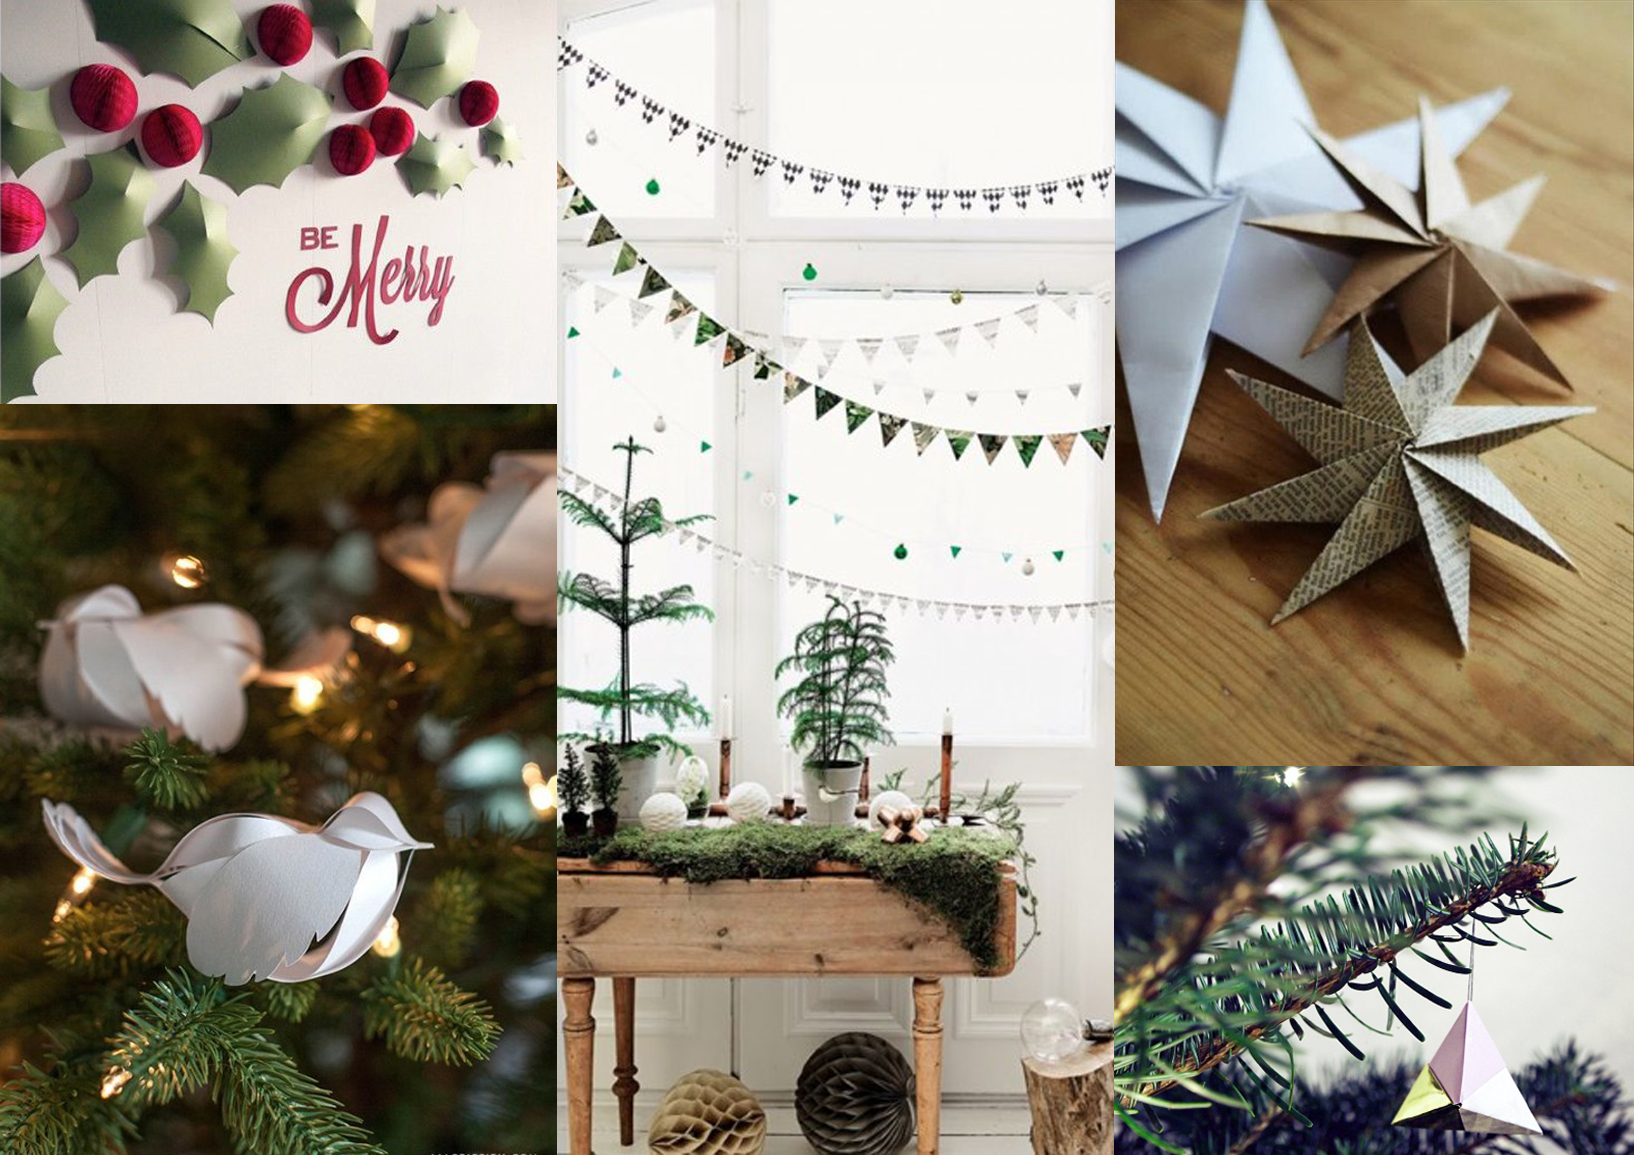 17 clever diy ideas for the holidays design and paper diy paper decorations main jeuxipadfo Images